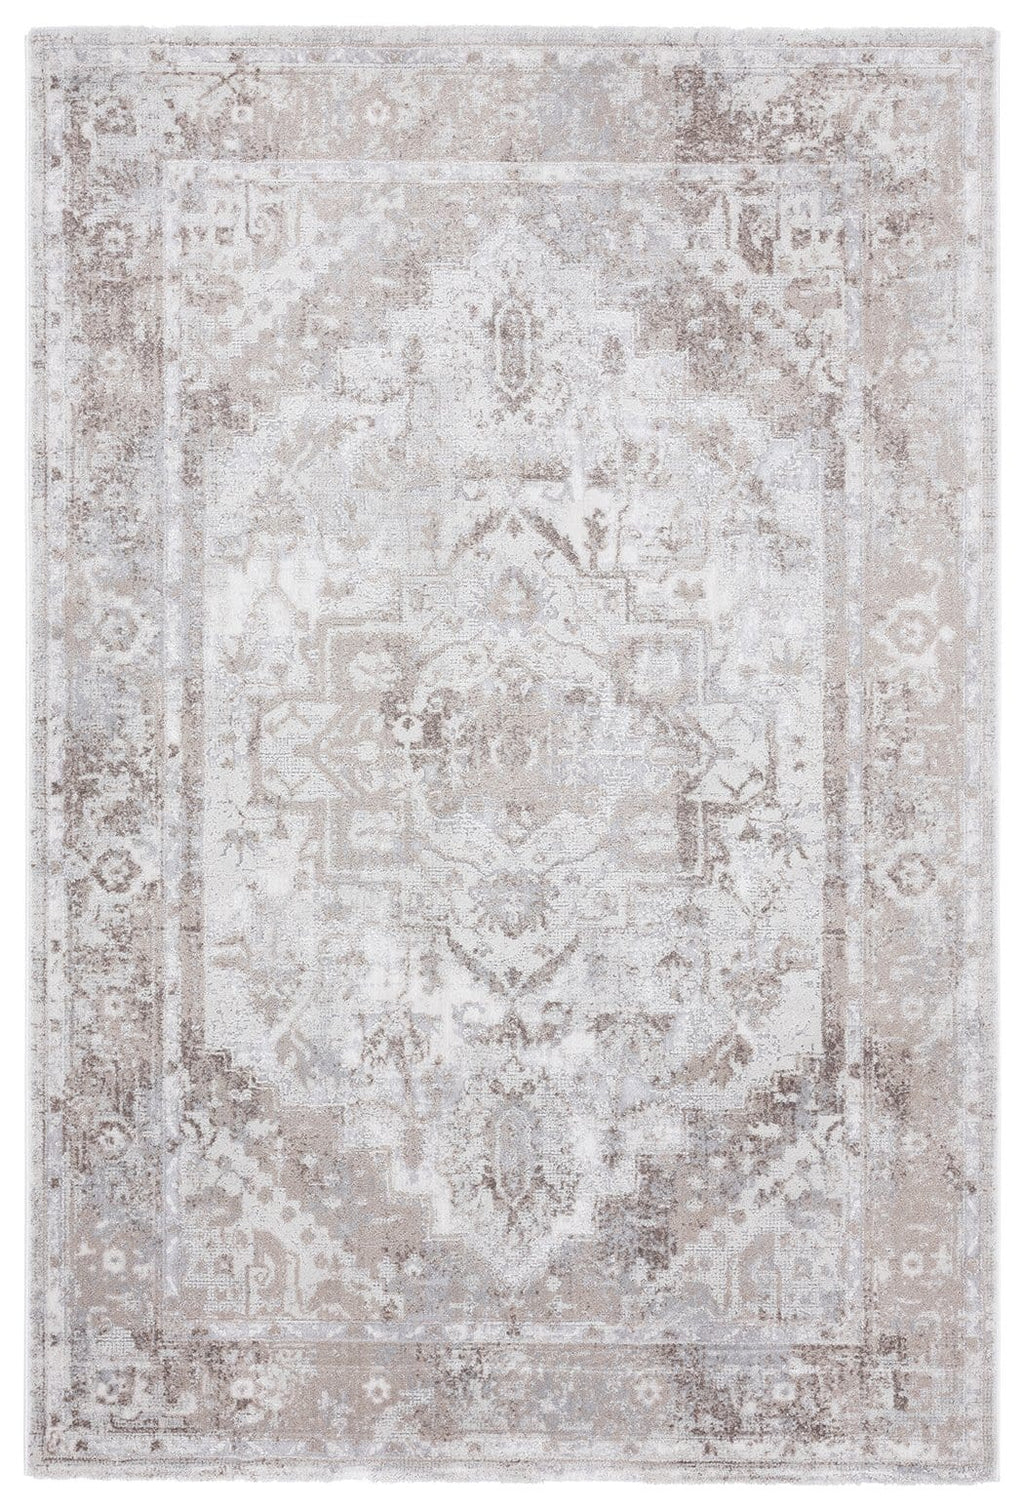 morgan-beige-brown-transitional-distressed-medallion-rug-missamara.jpg